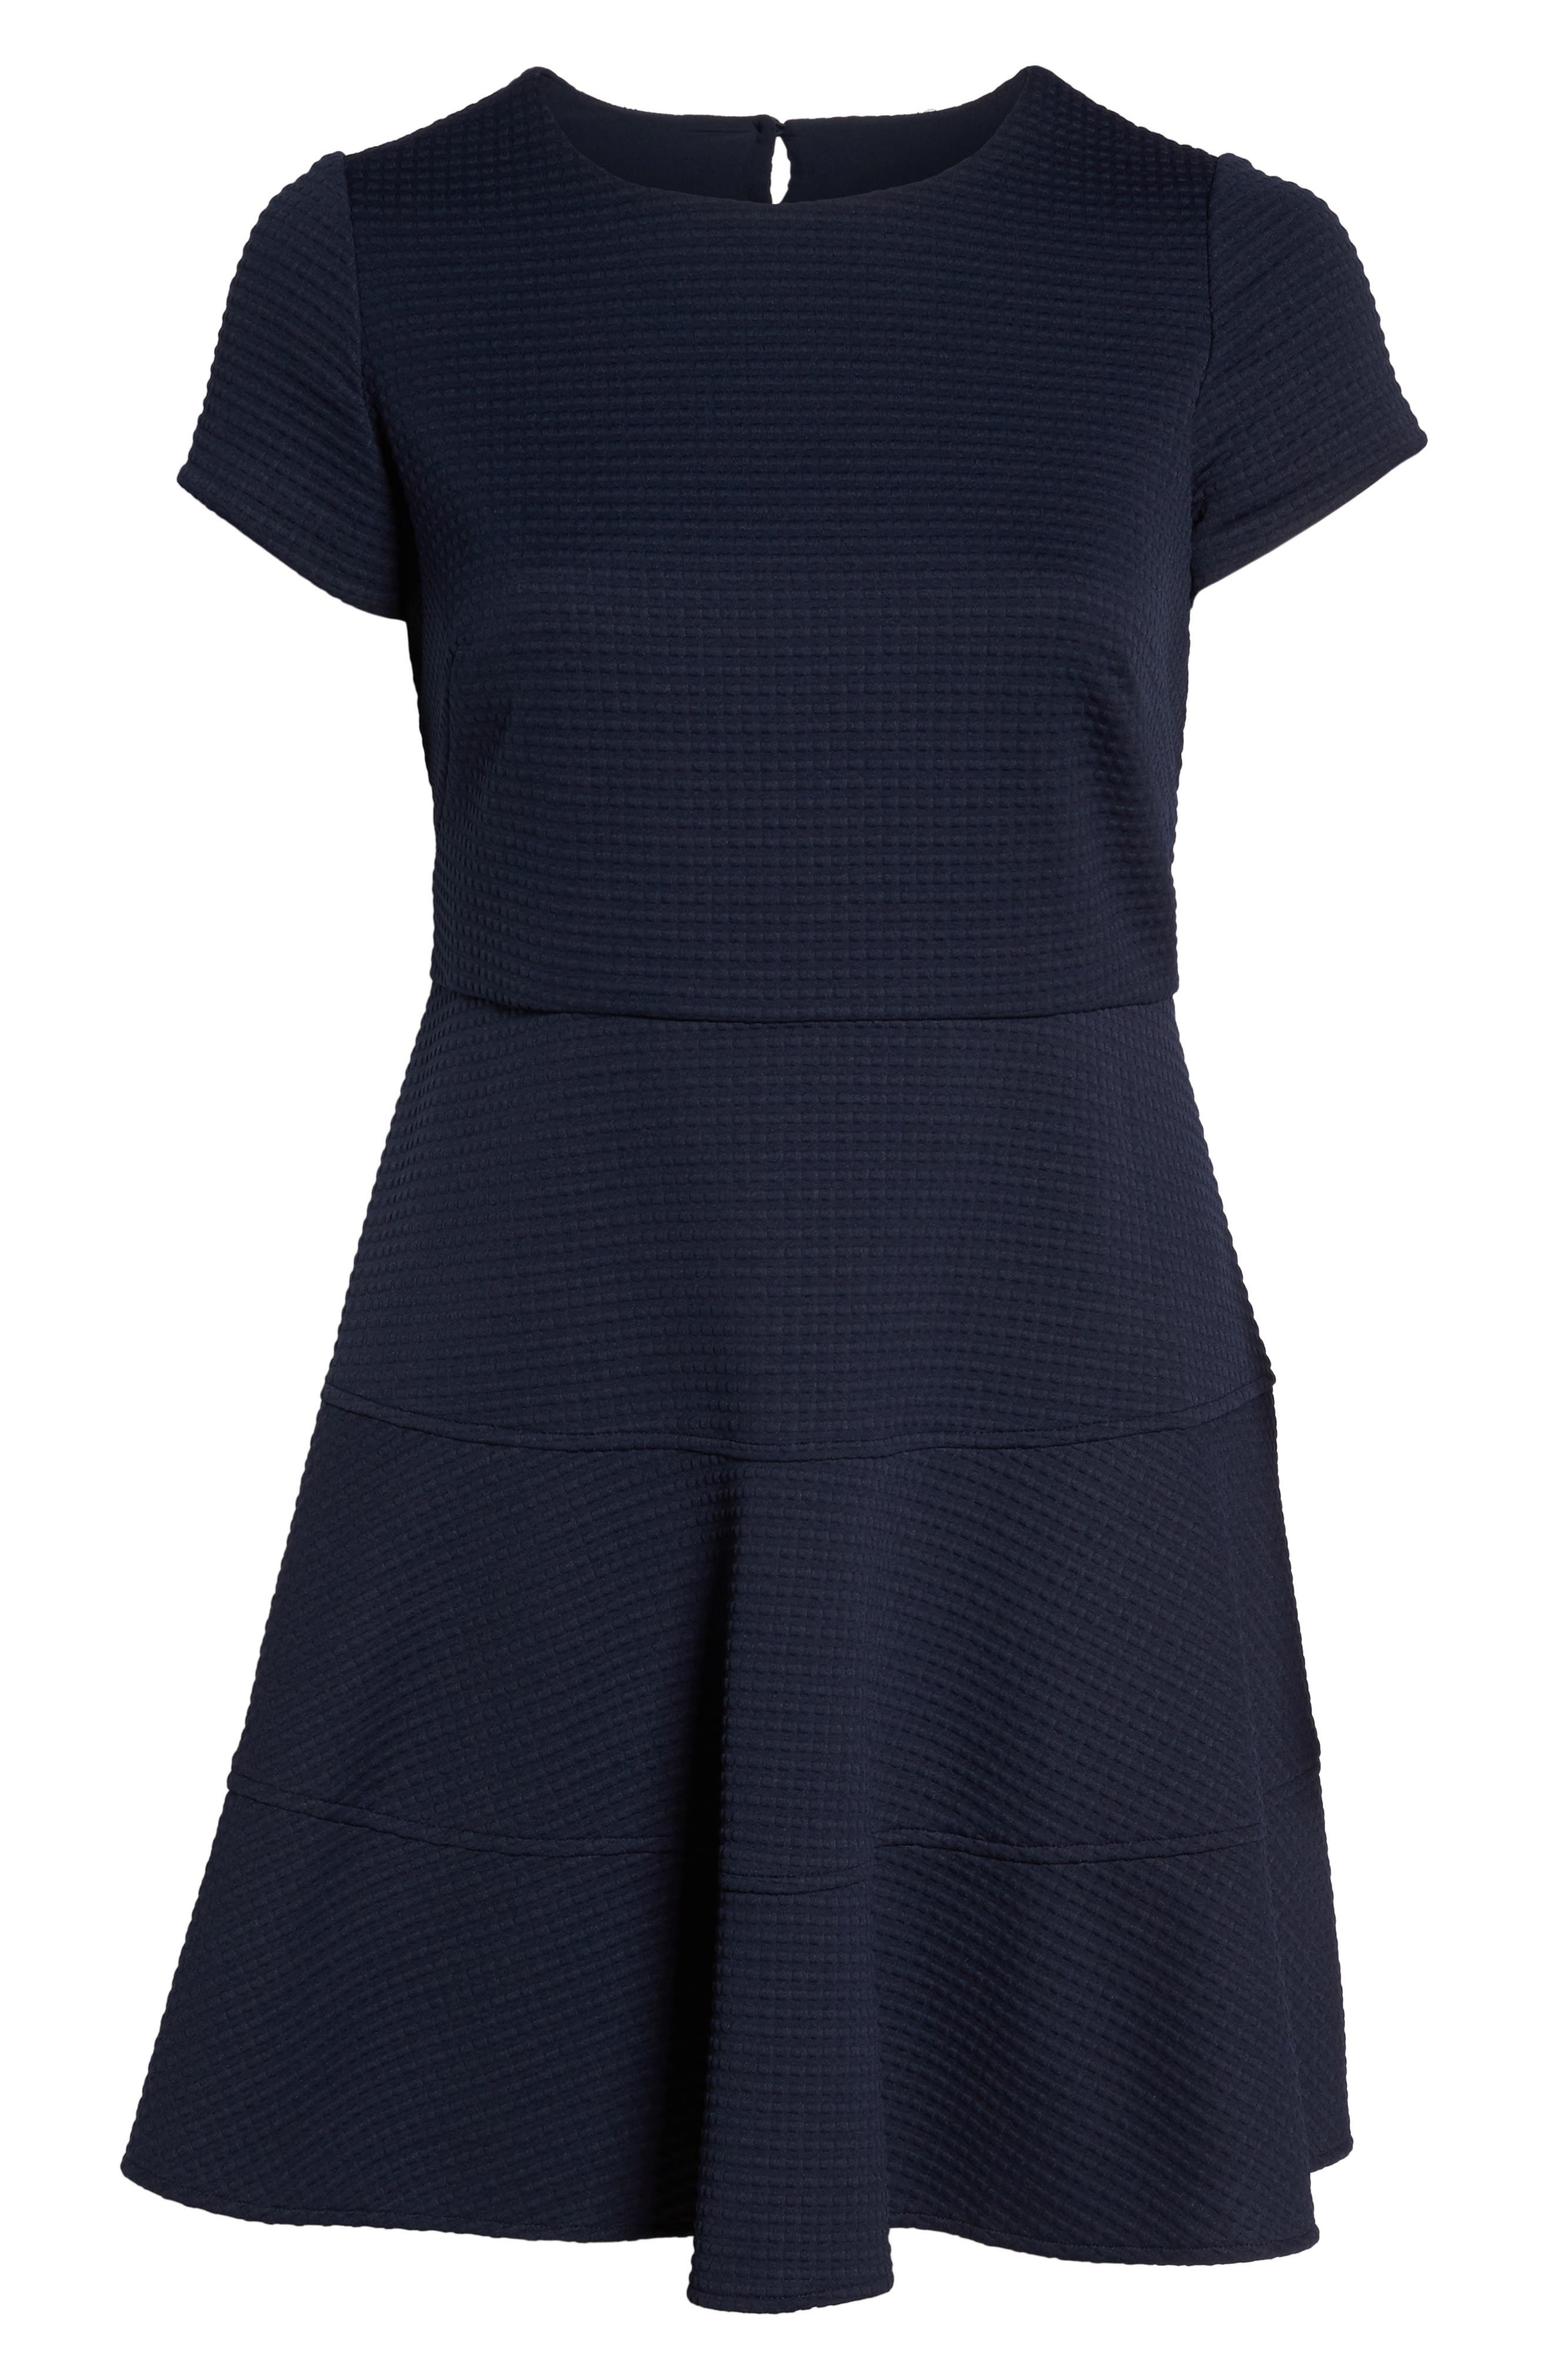 Fit & Flare Dress,                             Alternate thumbnail 6, color,                             Navy